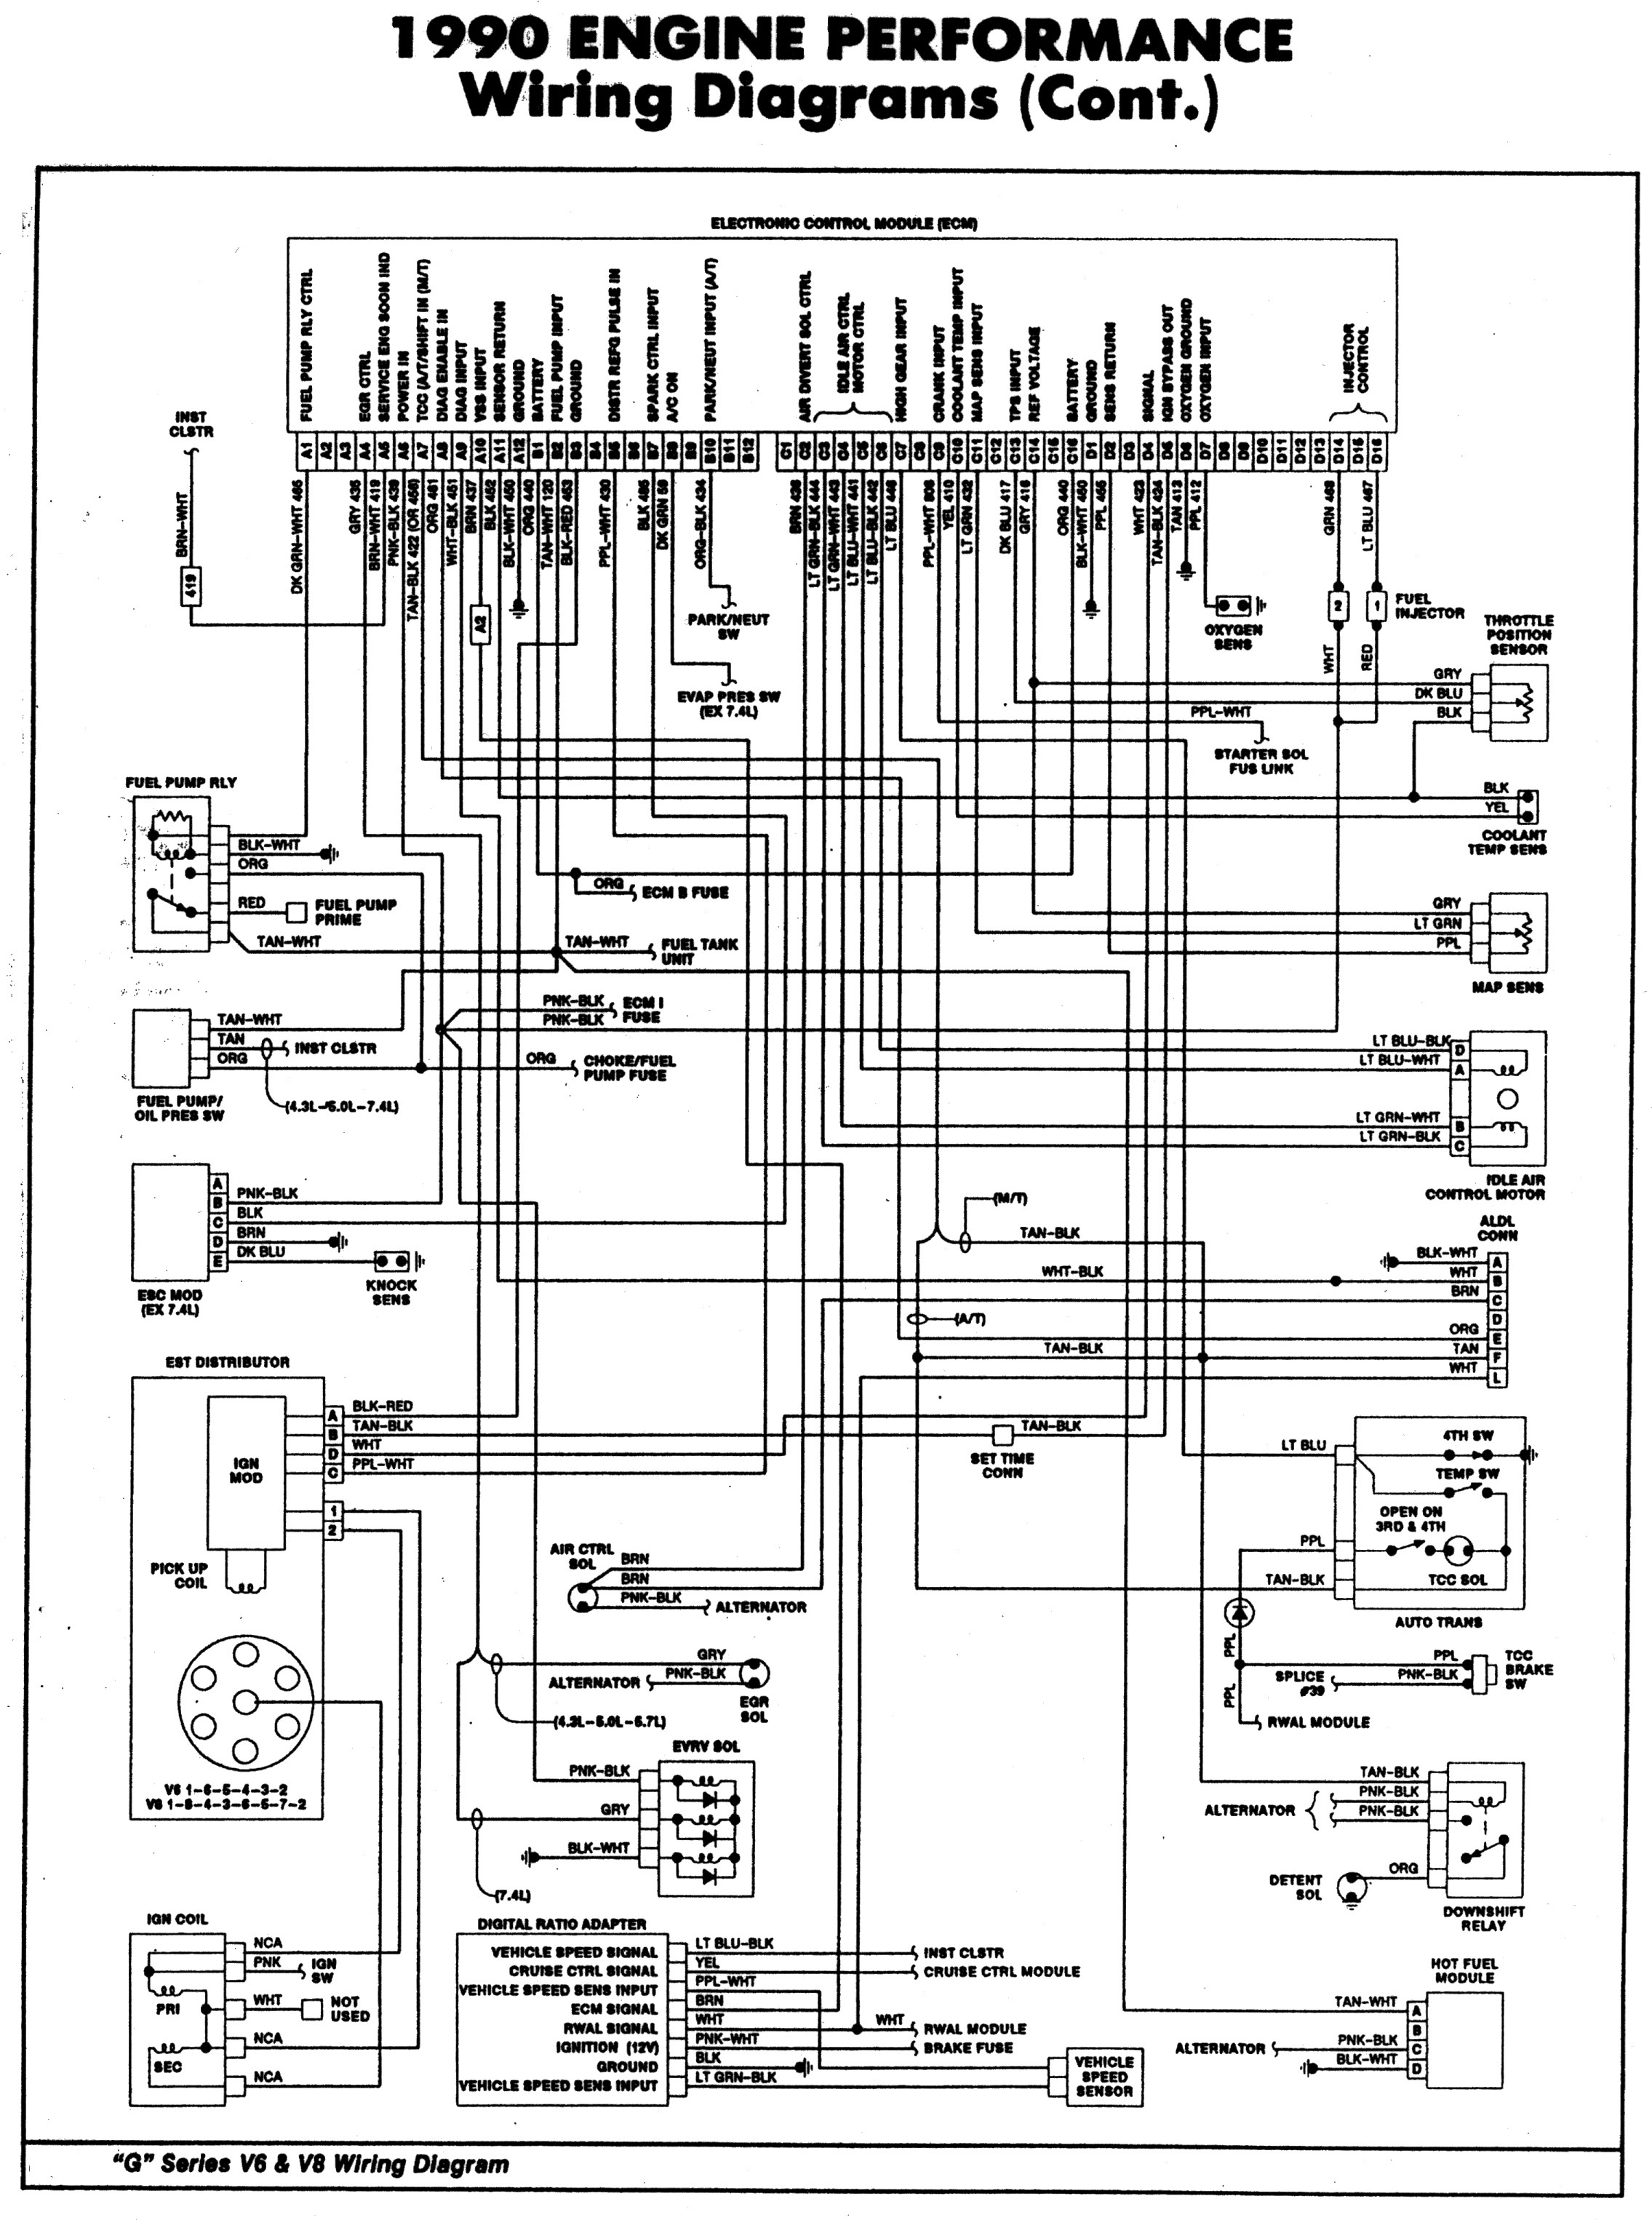 Pin on George | 1990 Gm Truck Ignition Wiring Diagram |  | Pinterest